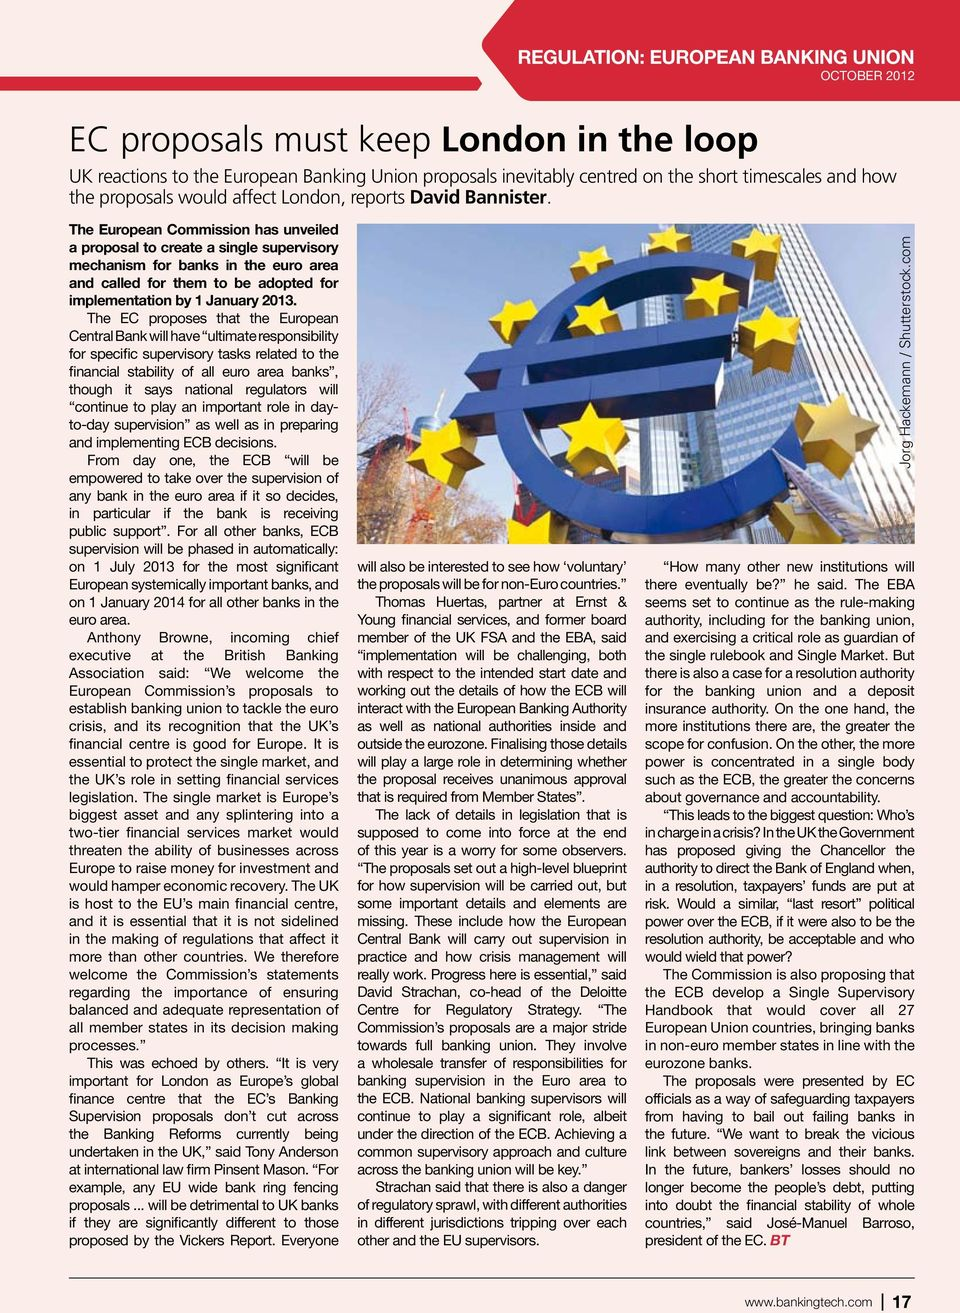 The European Commission has unveiled a proposal to create a single supervisory mechanism for banks in the euro area and called for them to be adopted for implementation by 1 January 2013.